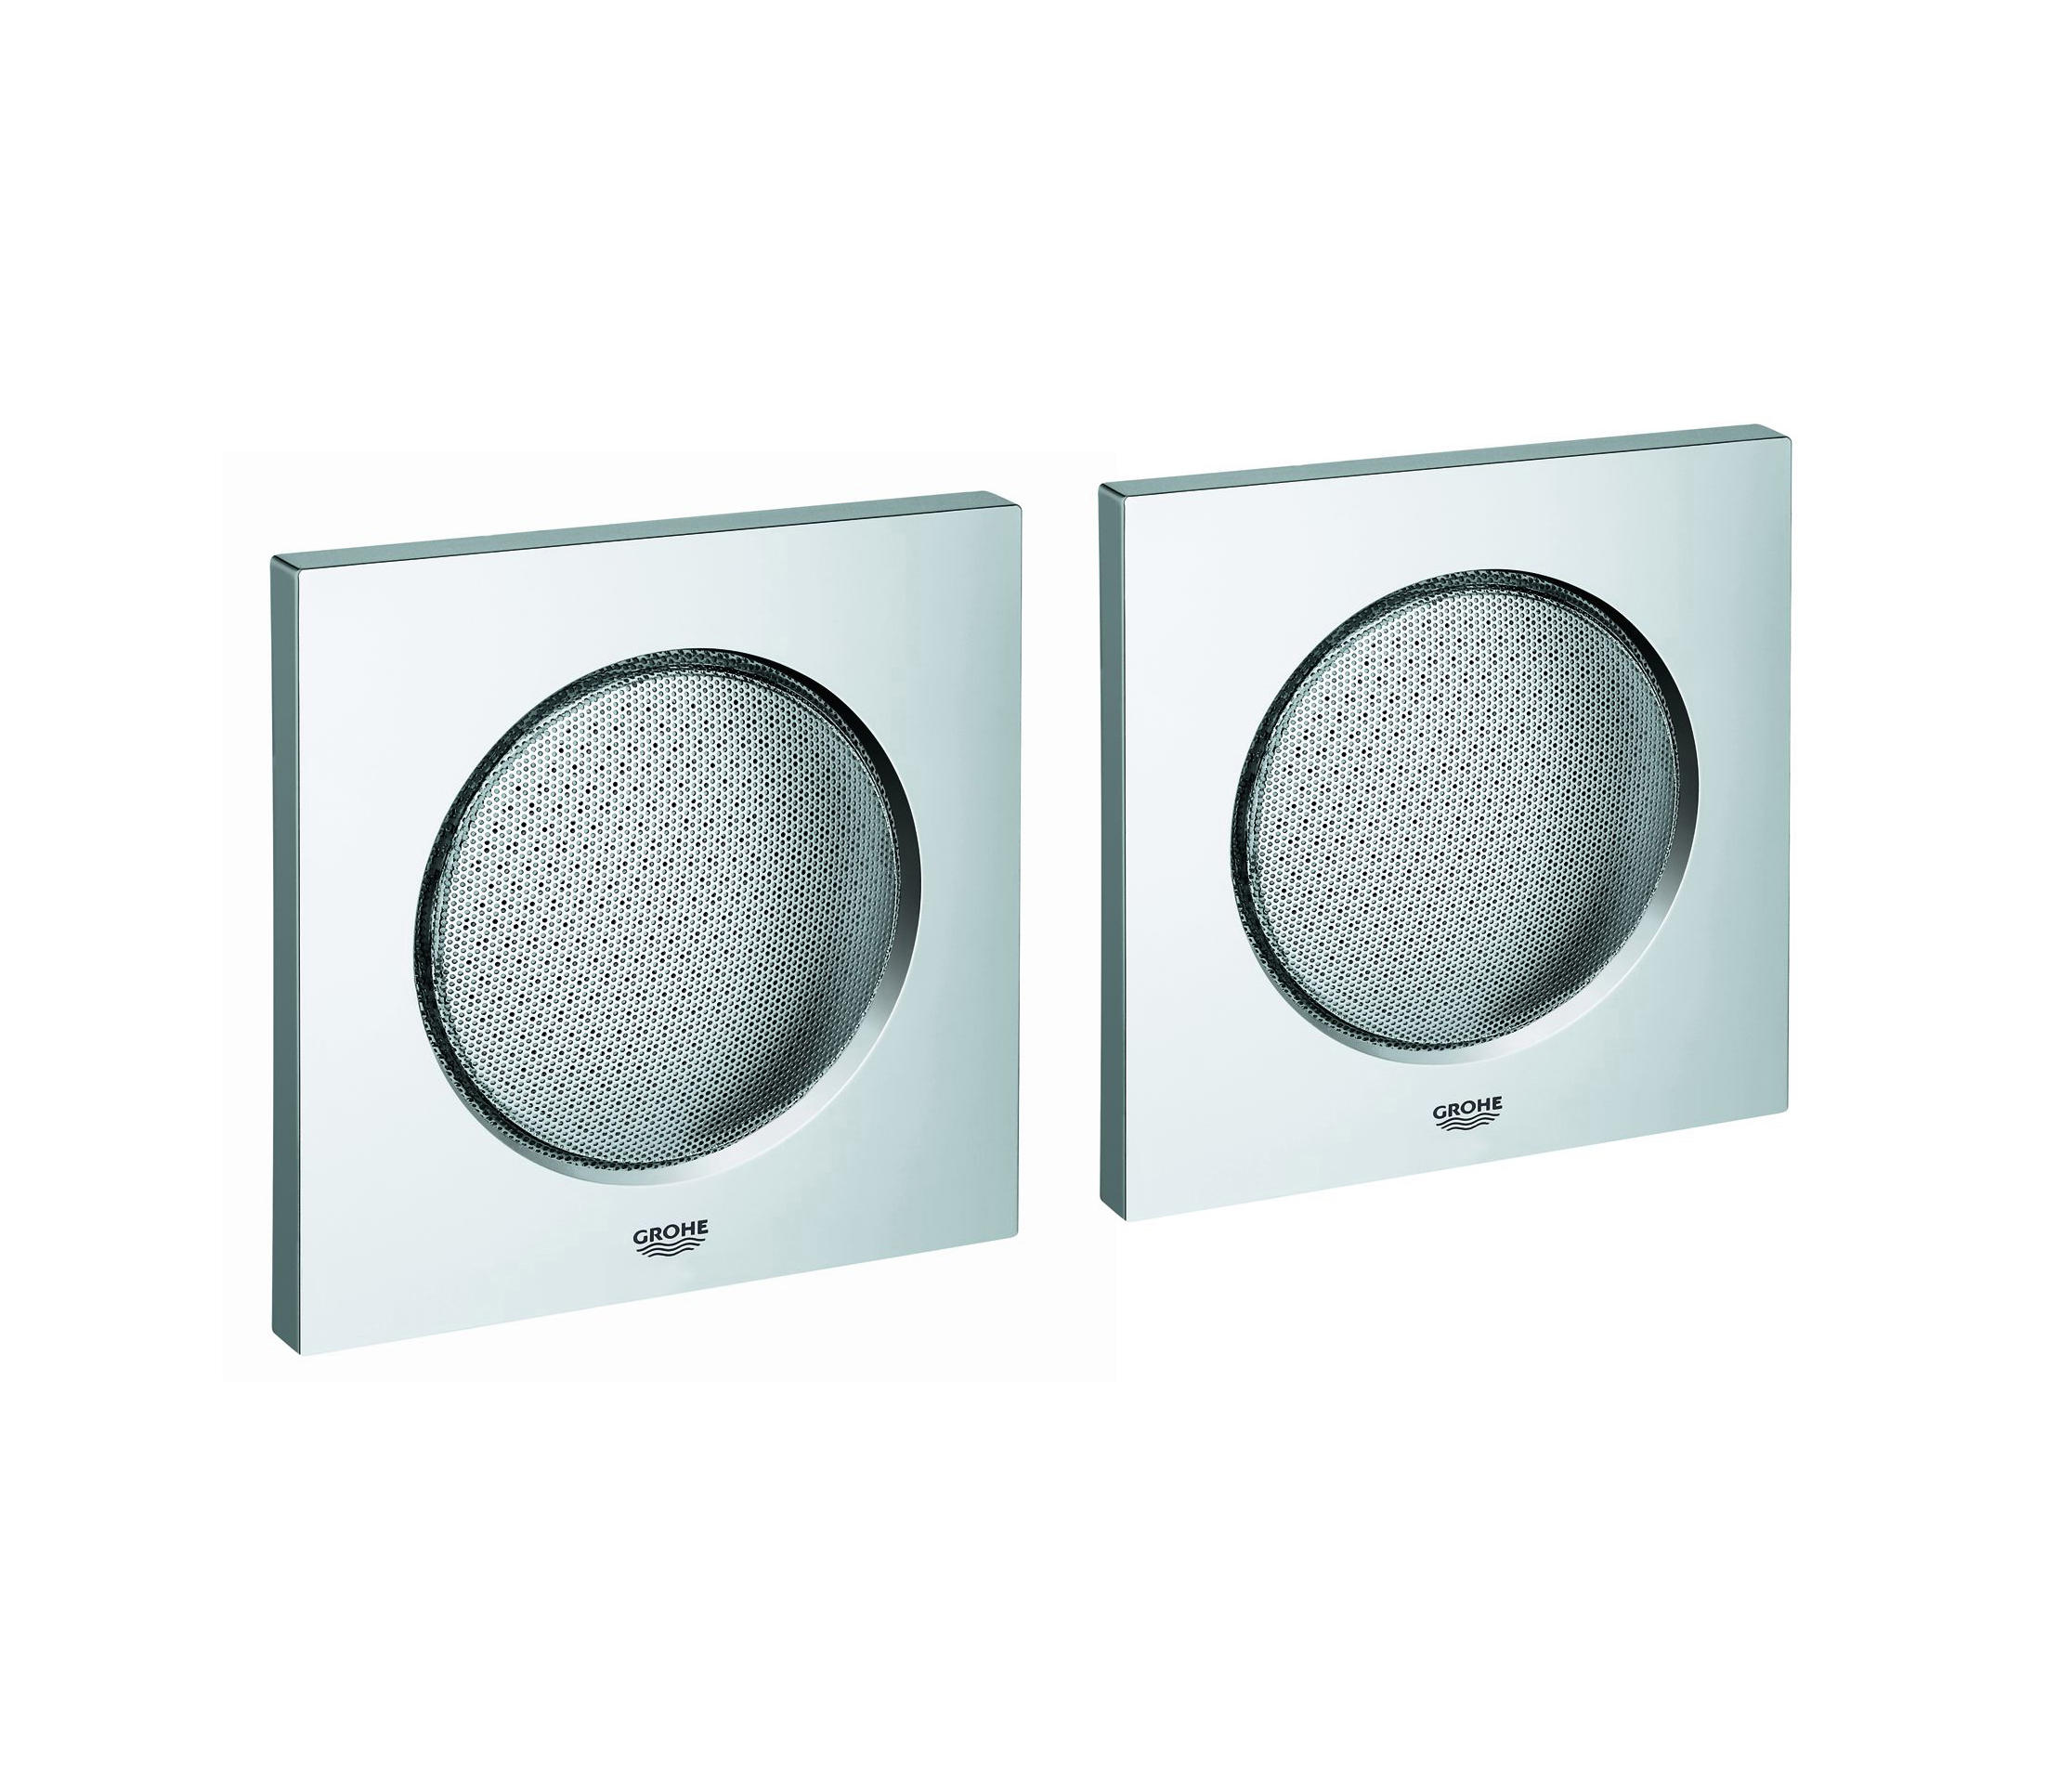 rainshower f series sound set built in speakers from grohe architonic. Black Bedroom Furniture Sets. Home Design Ideas